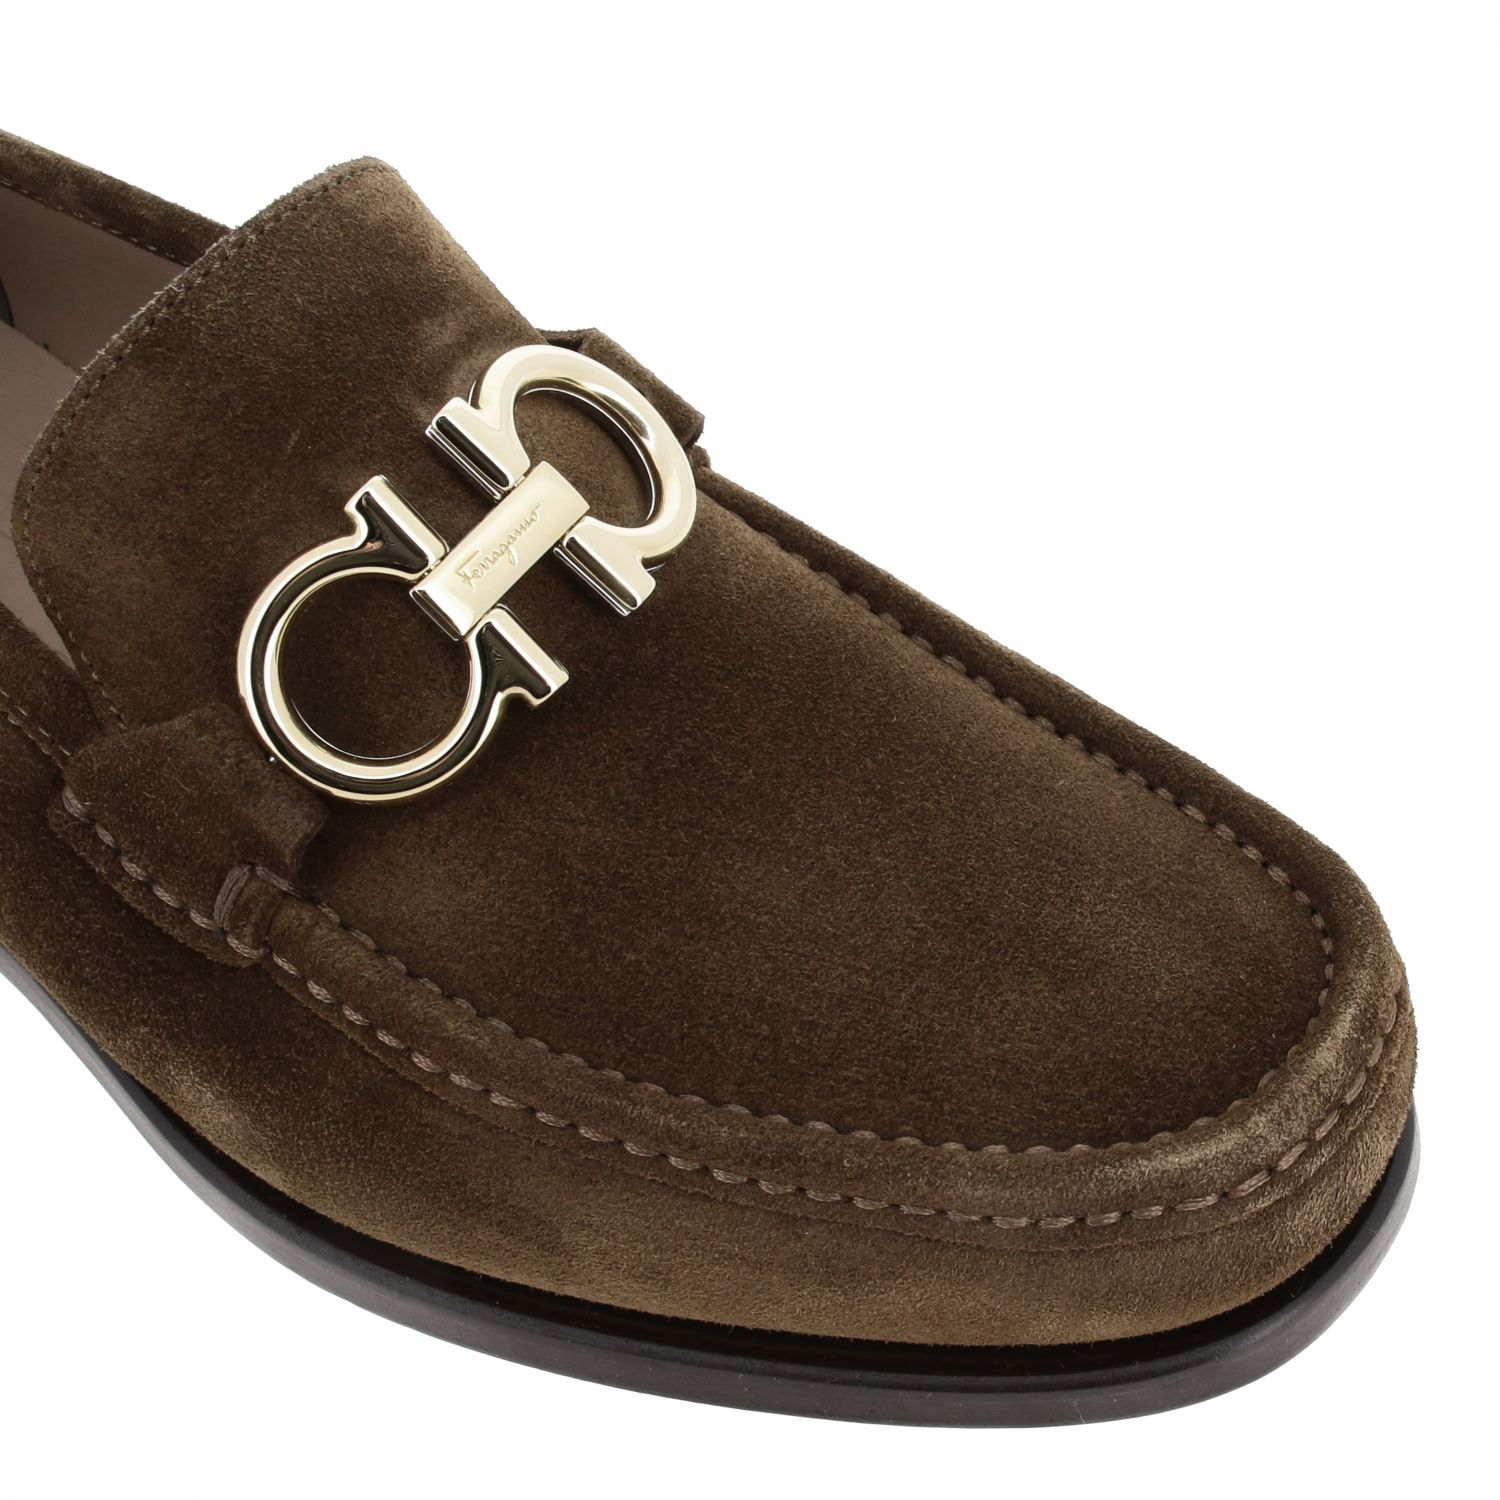 Shoes men Salvatore Ferragamo brown 4